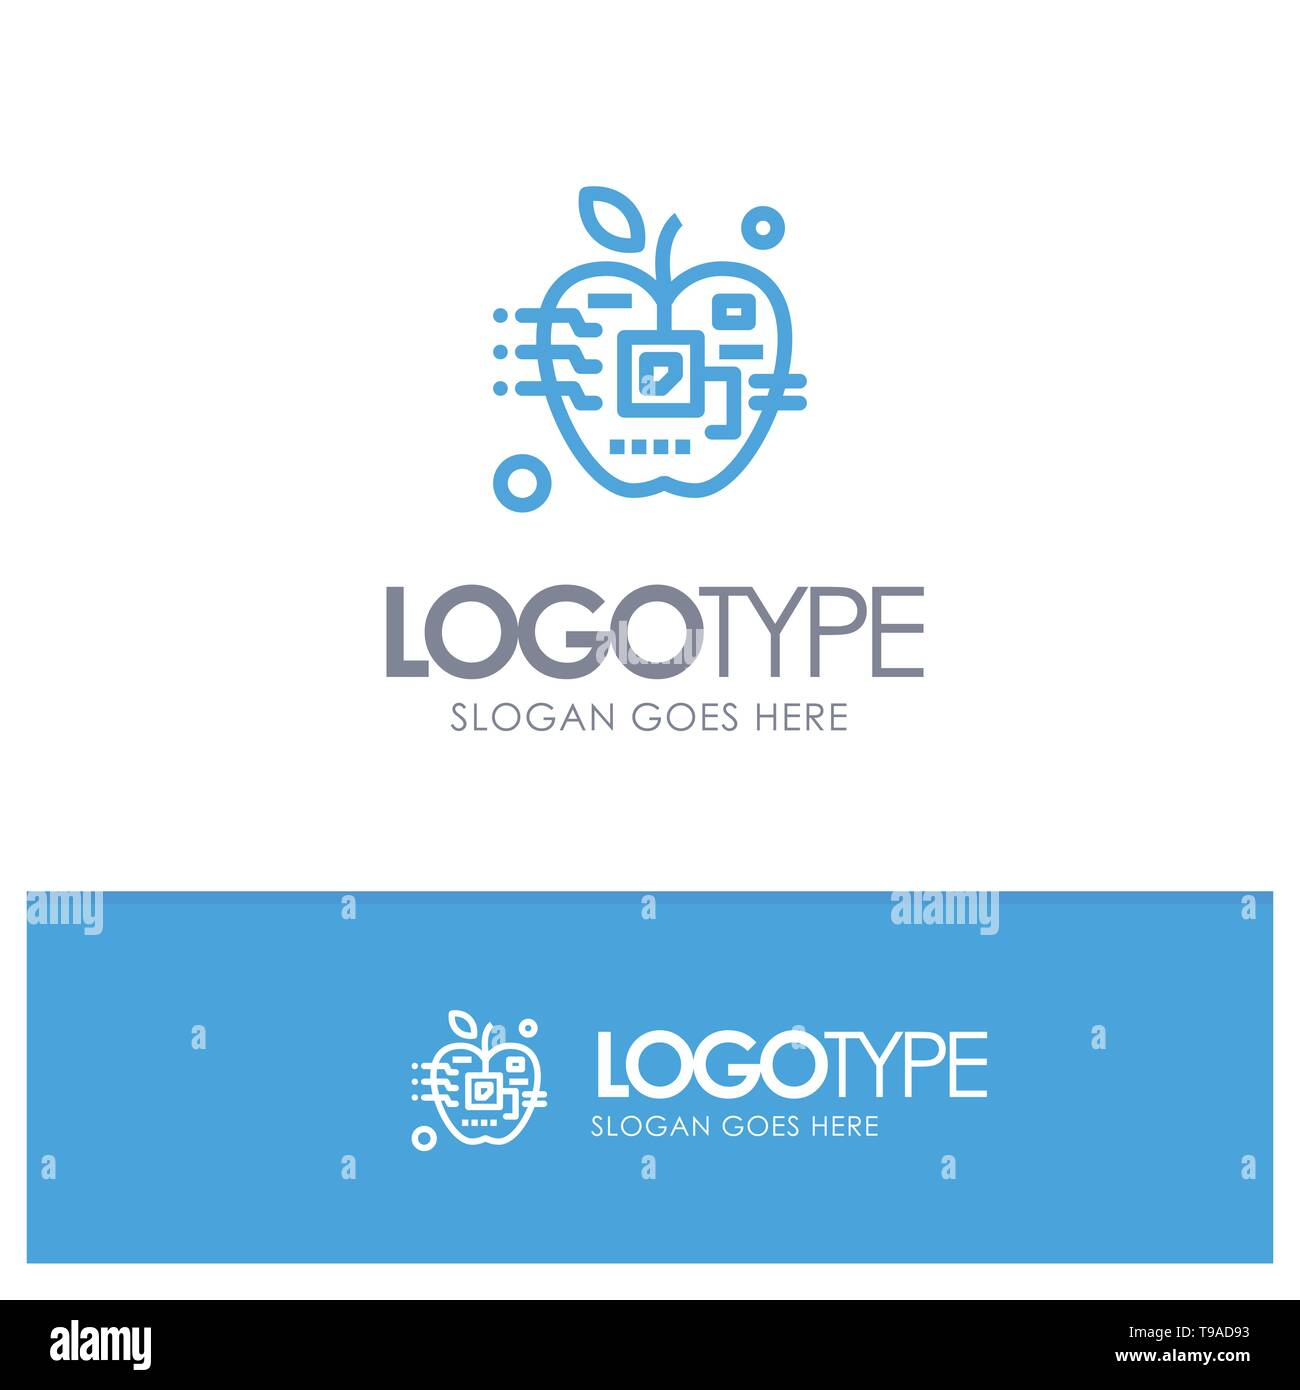 Apple, Artificial, Biology, Digital, Electronic Blue outLine Logo with place for tagline - Stock Image